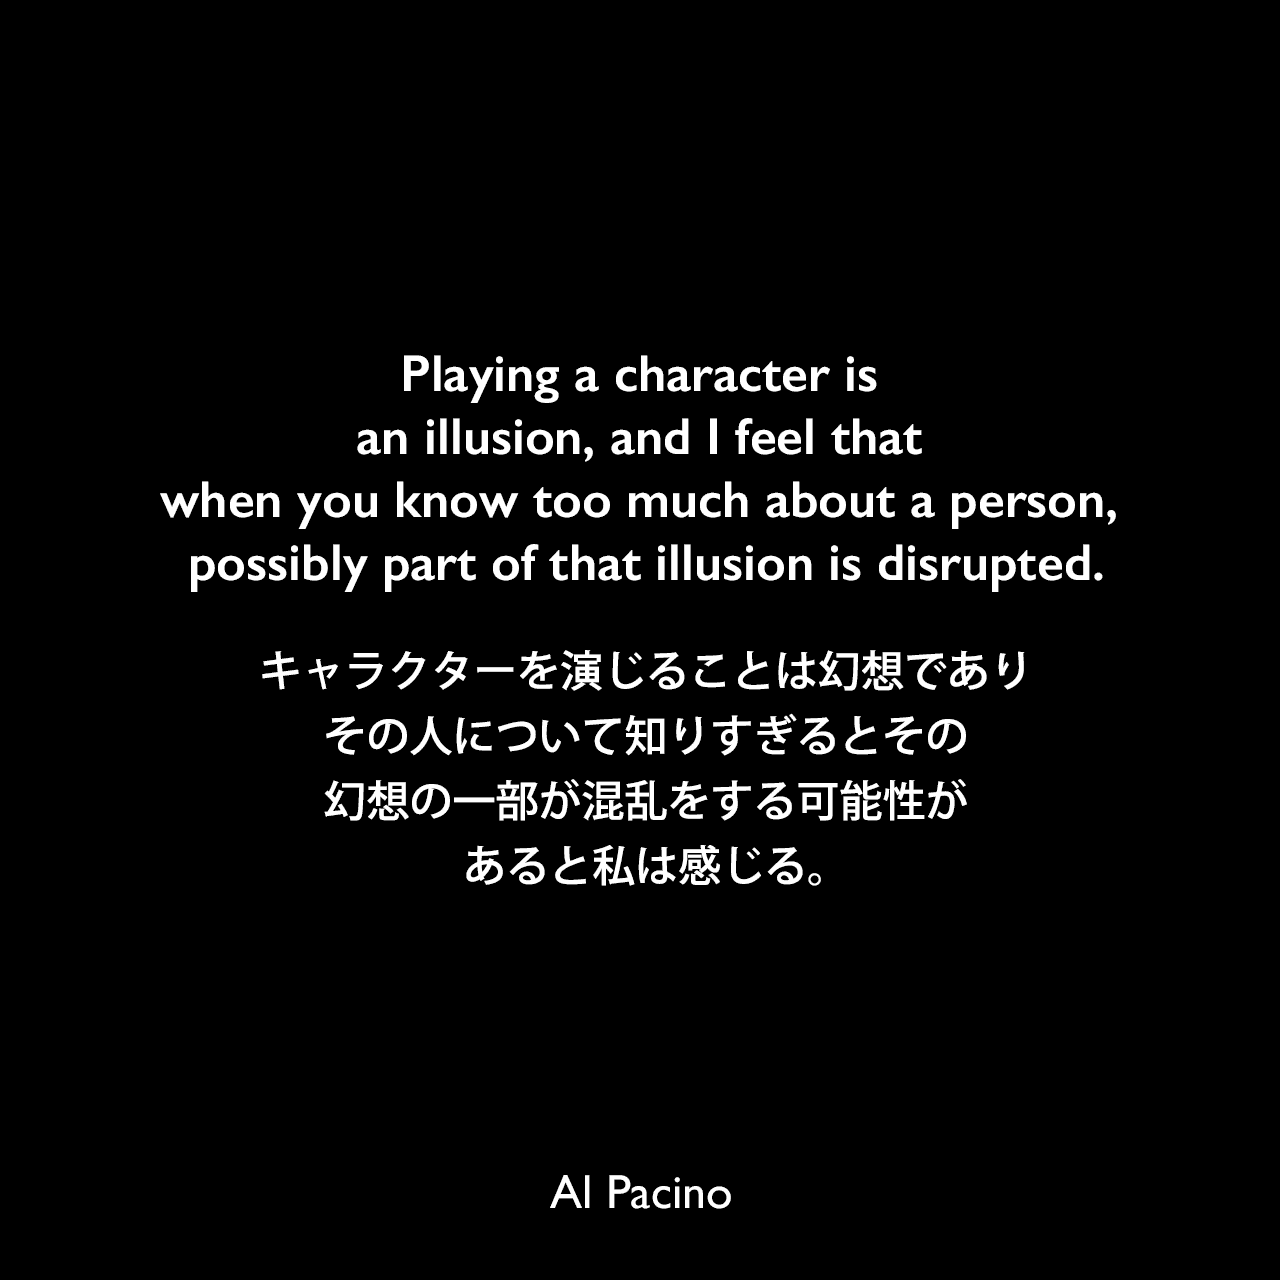 Playing a character is an illusion, and I feel that when you know too much about a person, possibly part of that illusion is disrupted.キャラクターを演じることは幻想であり、その人について知りすぎるとその幻想の一部が混乱をする可能性があると私は感じる。Al Pacino